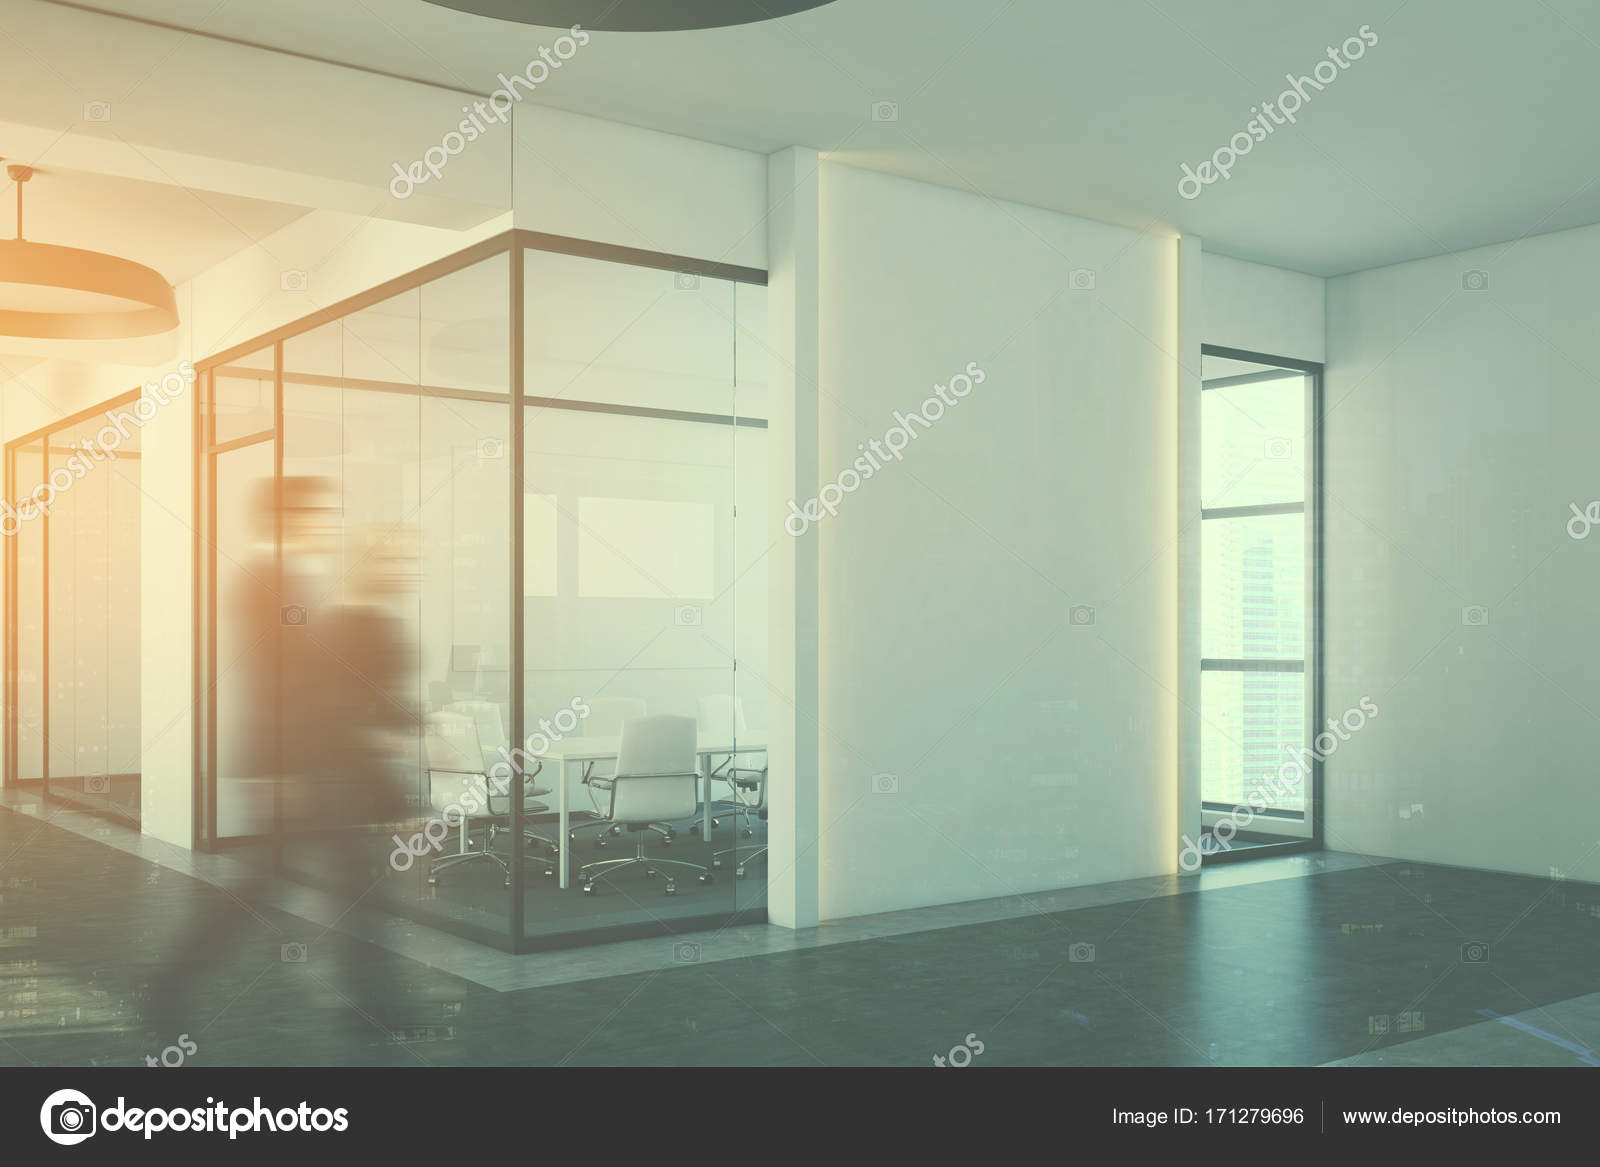 office meeting room. Business People In A White Conference Room Interior Corner With Concrete Floor, Glass Walls, Long Table Chairs And Blank Wall Fragment. Office Meeting